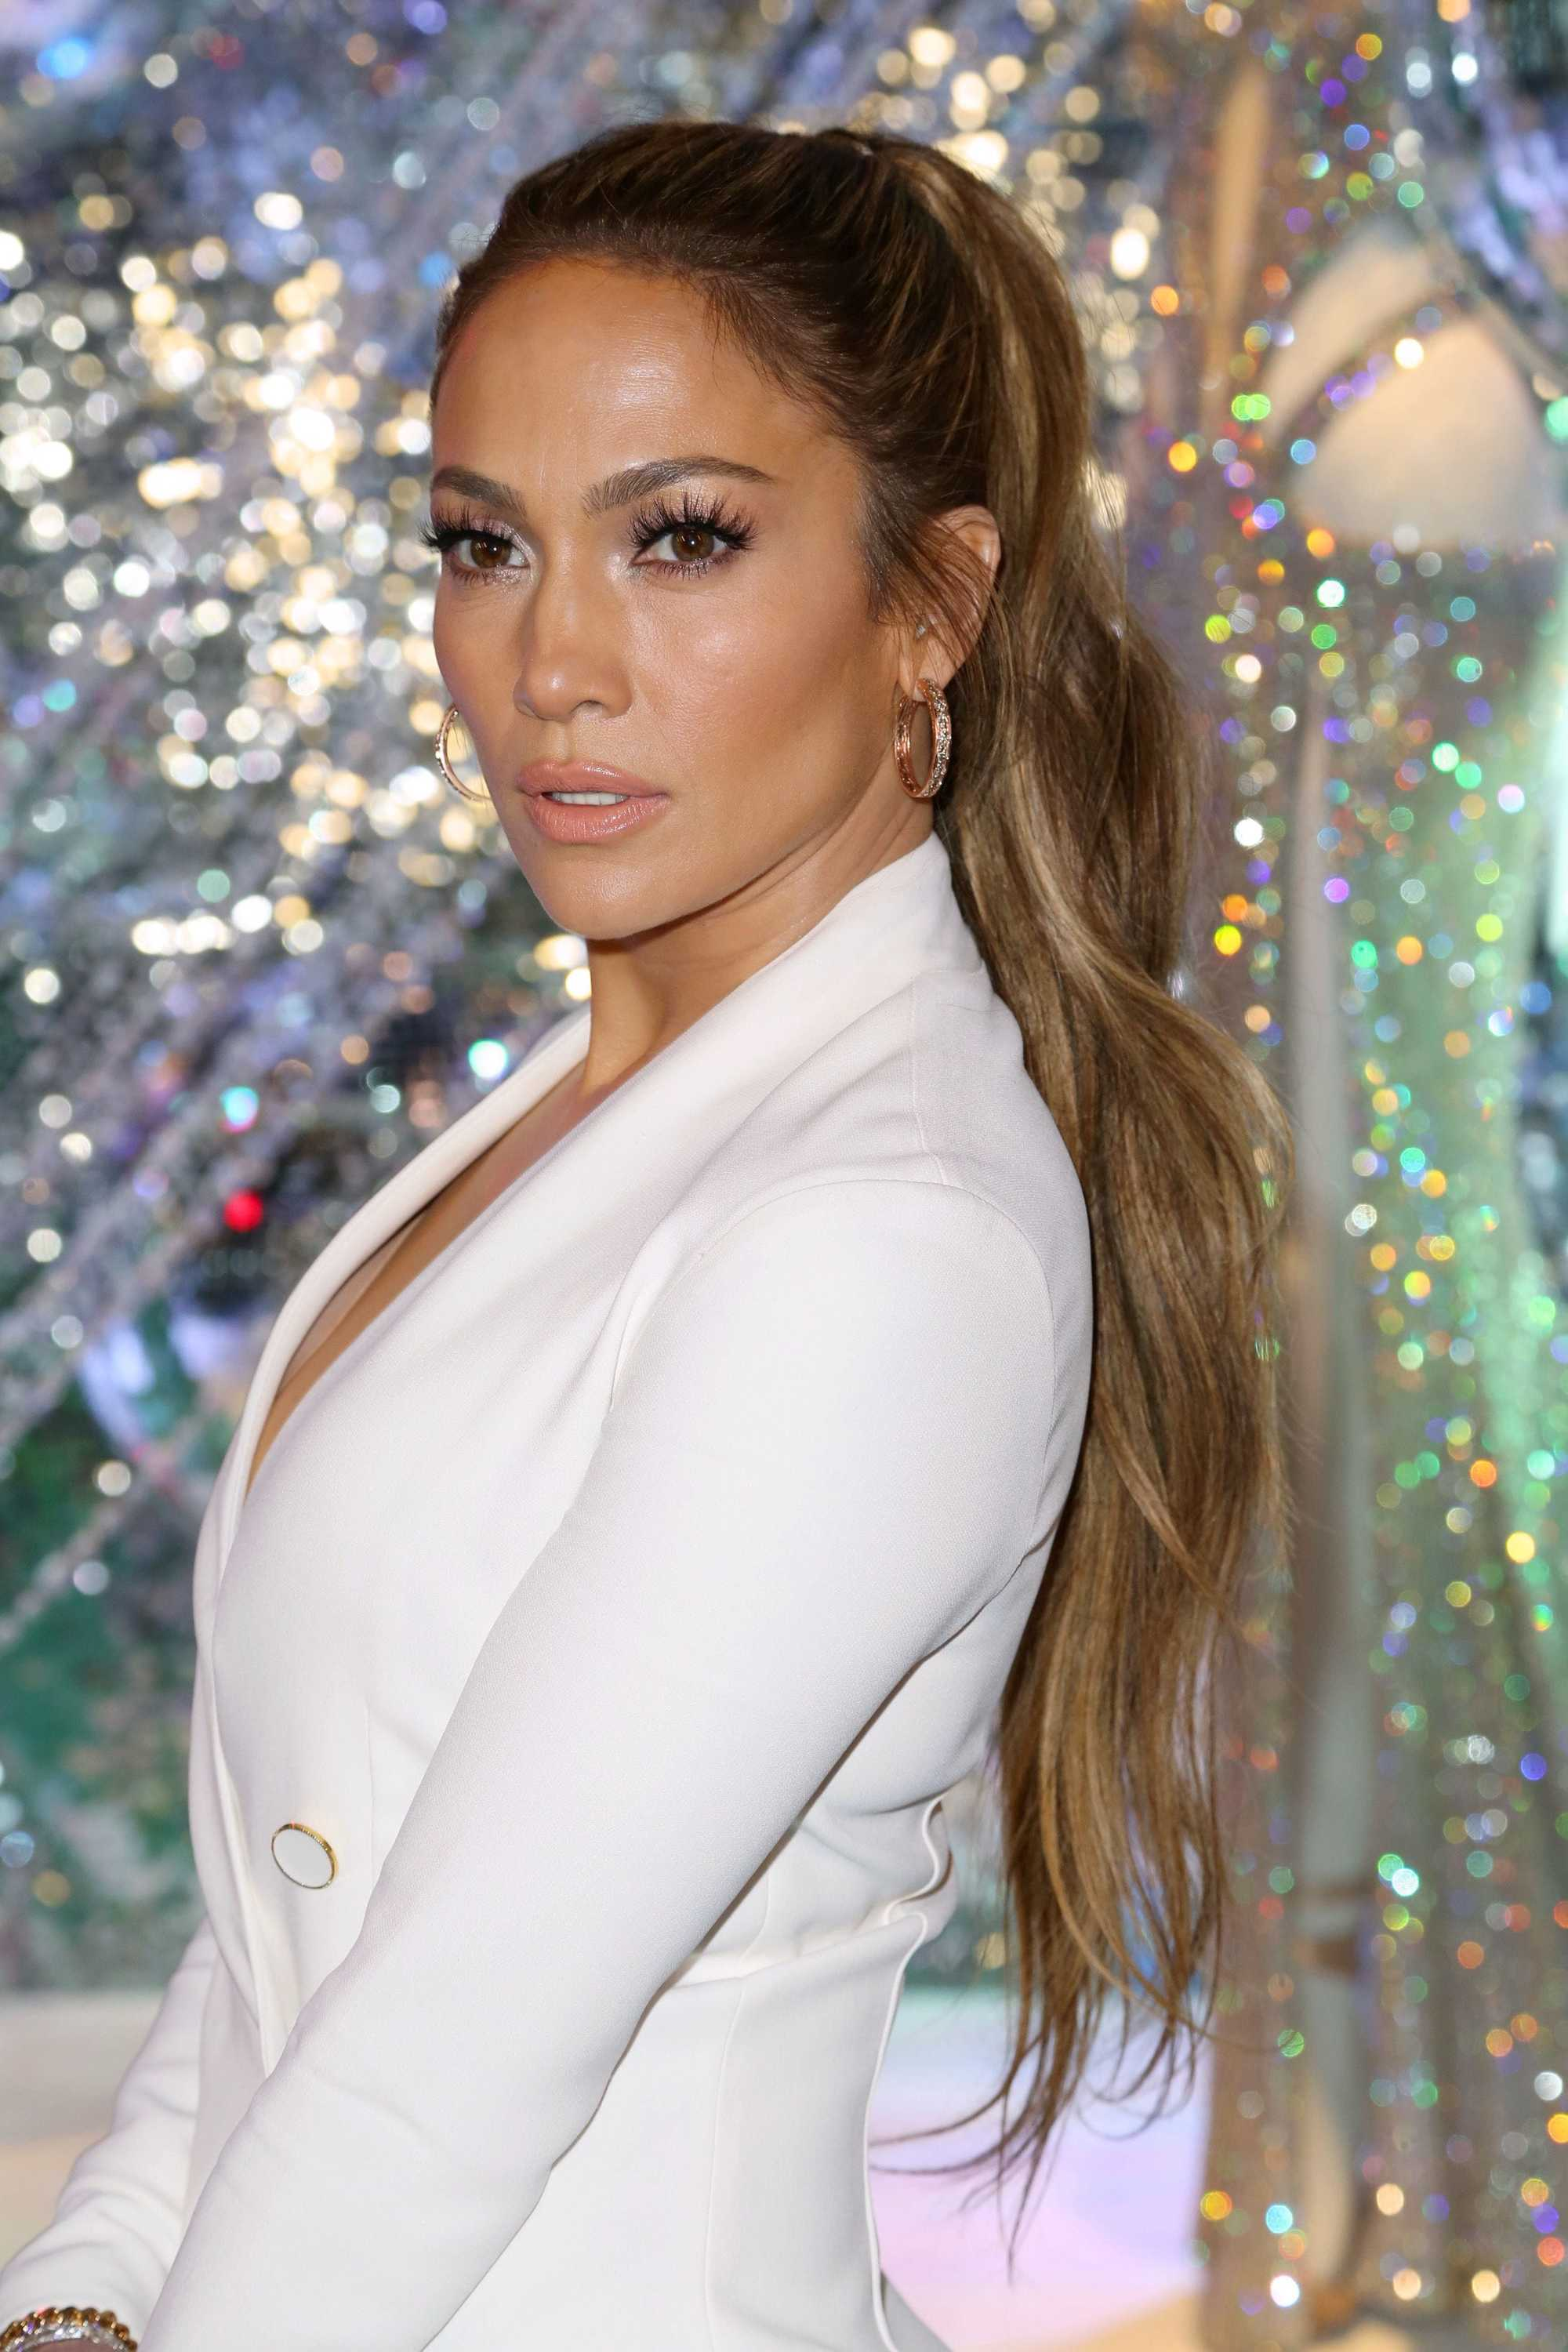 Medium brown hair with highlights looks to consider for 2017 jennifer lopez with highlighted hair in a white suit at an event pmusecretfo Images